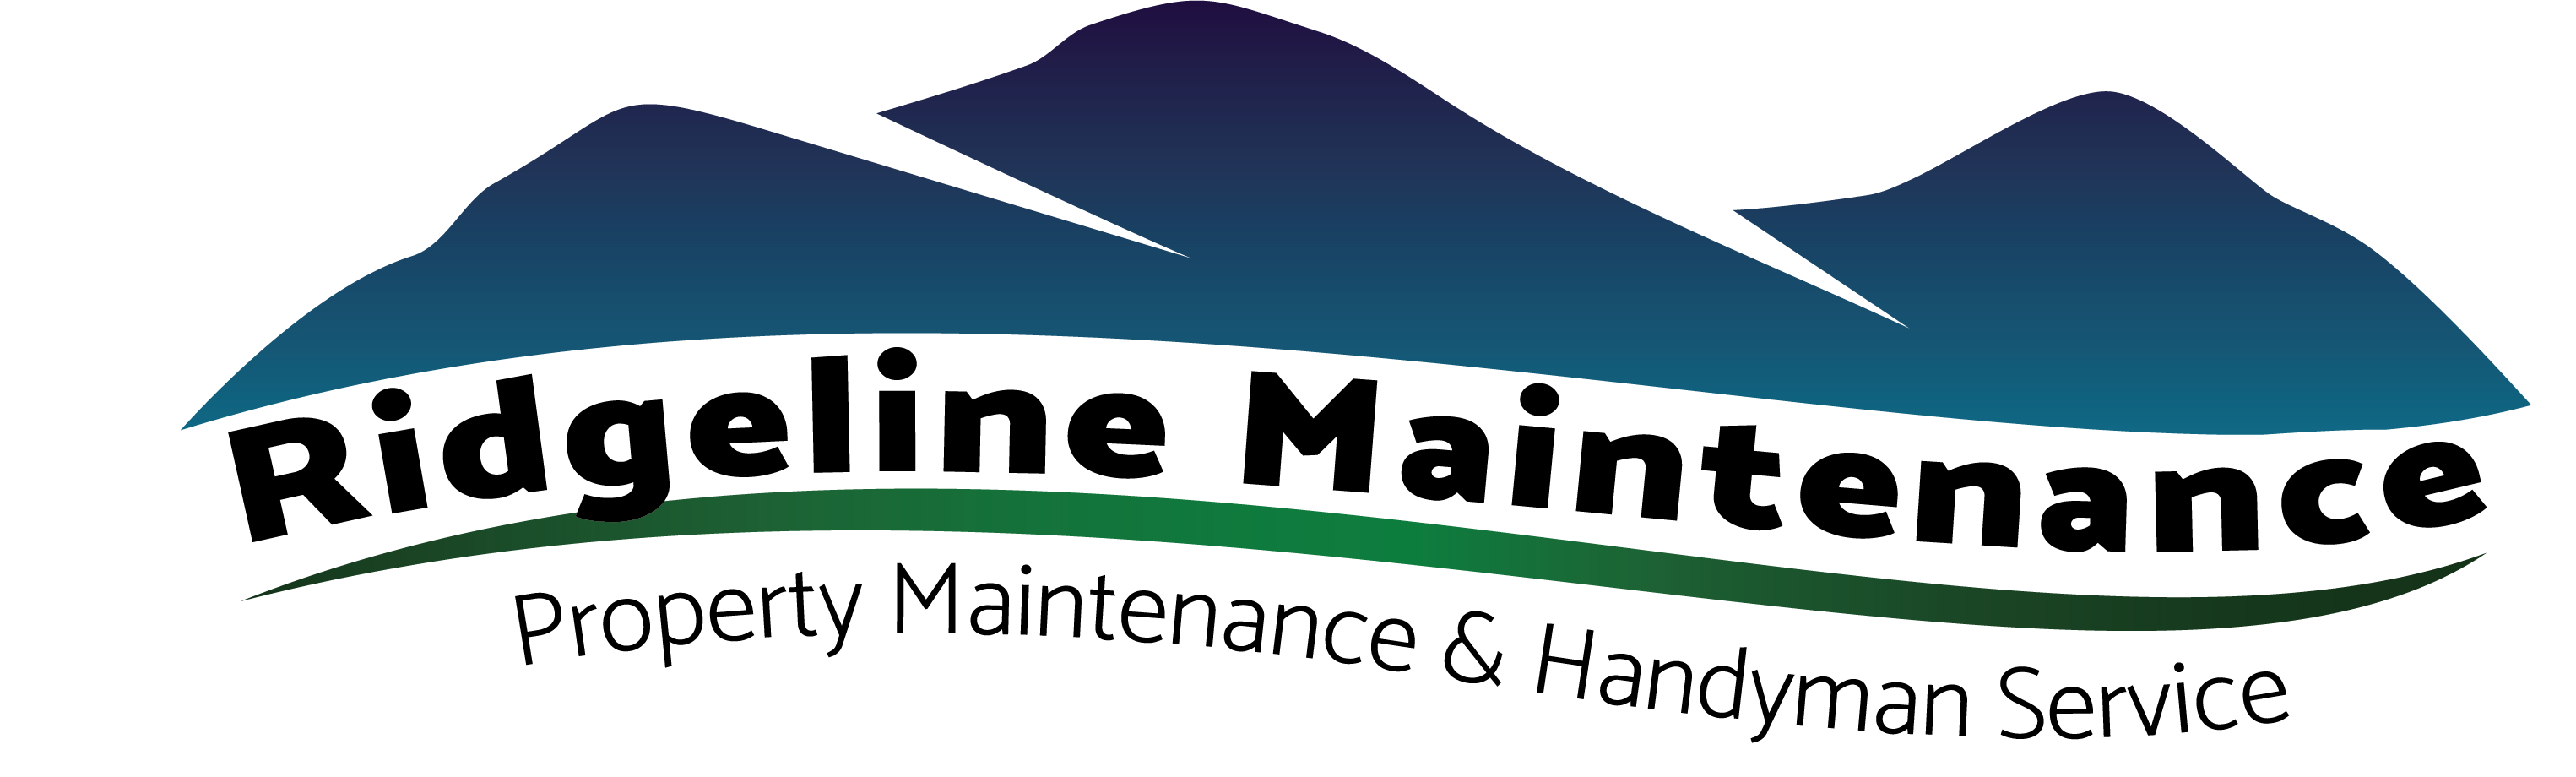 Ridgeline Maintenance